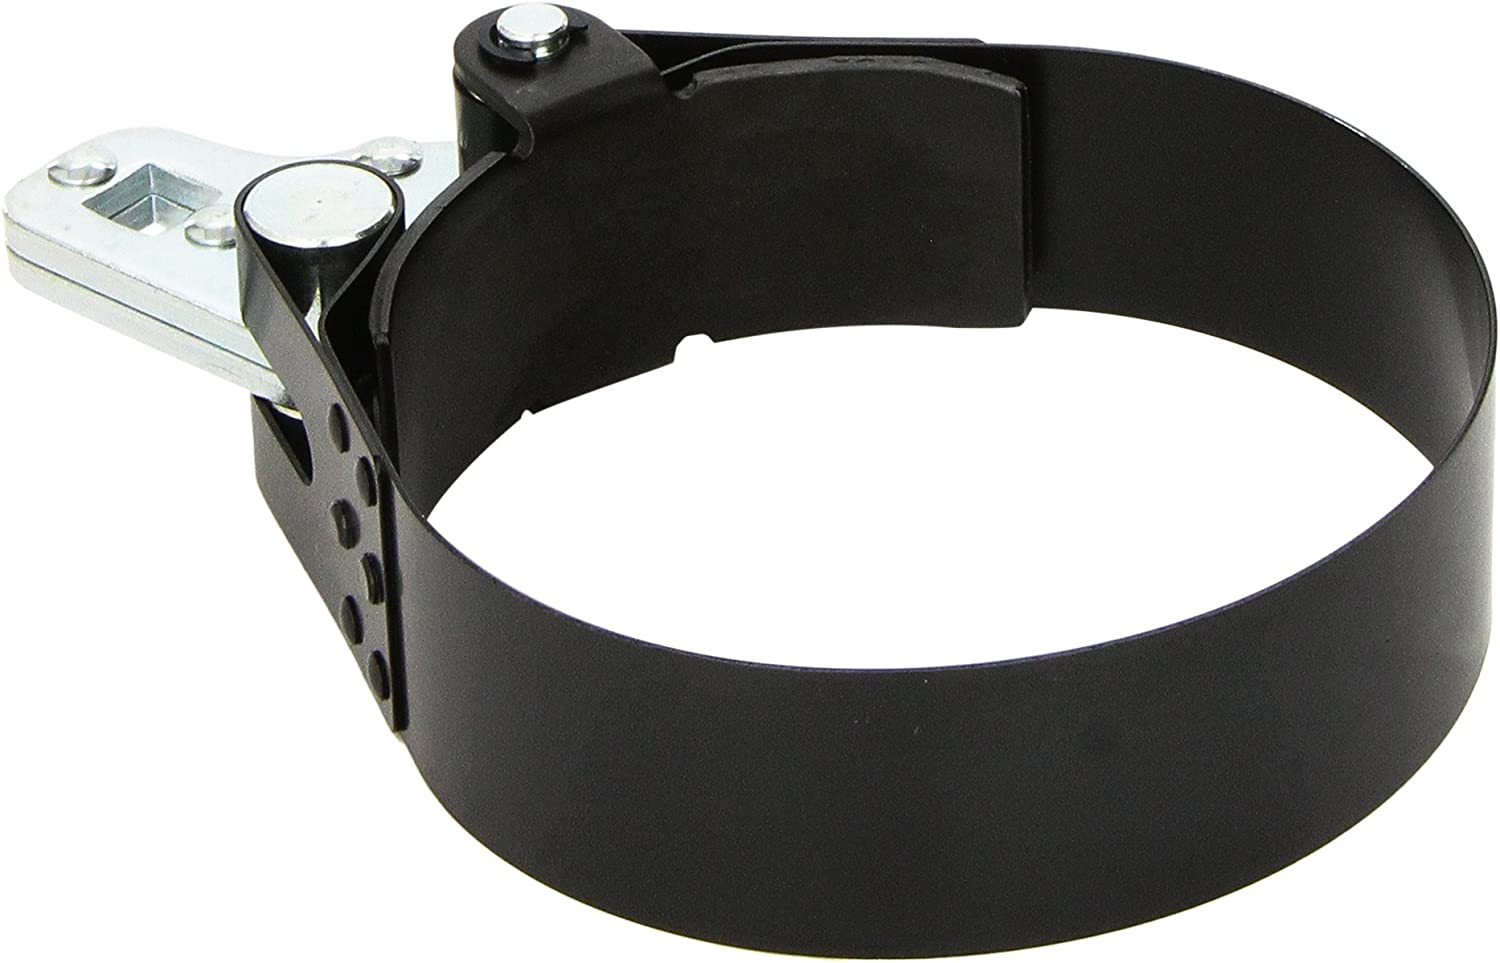 """GEARWRENCH Heavy-Duty Oil Filter Wrench 4-1/2"""" to 5-1/4"""" - 2321"""